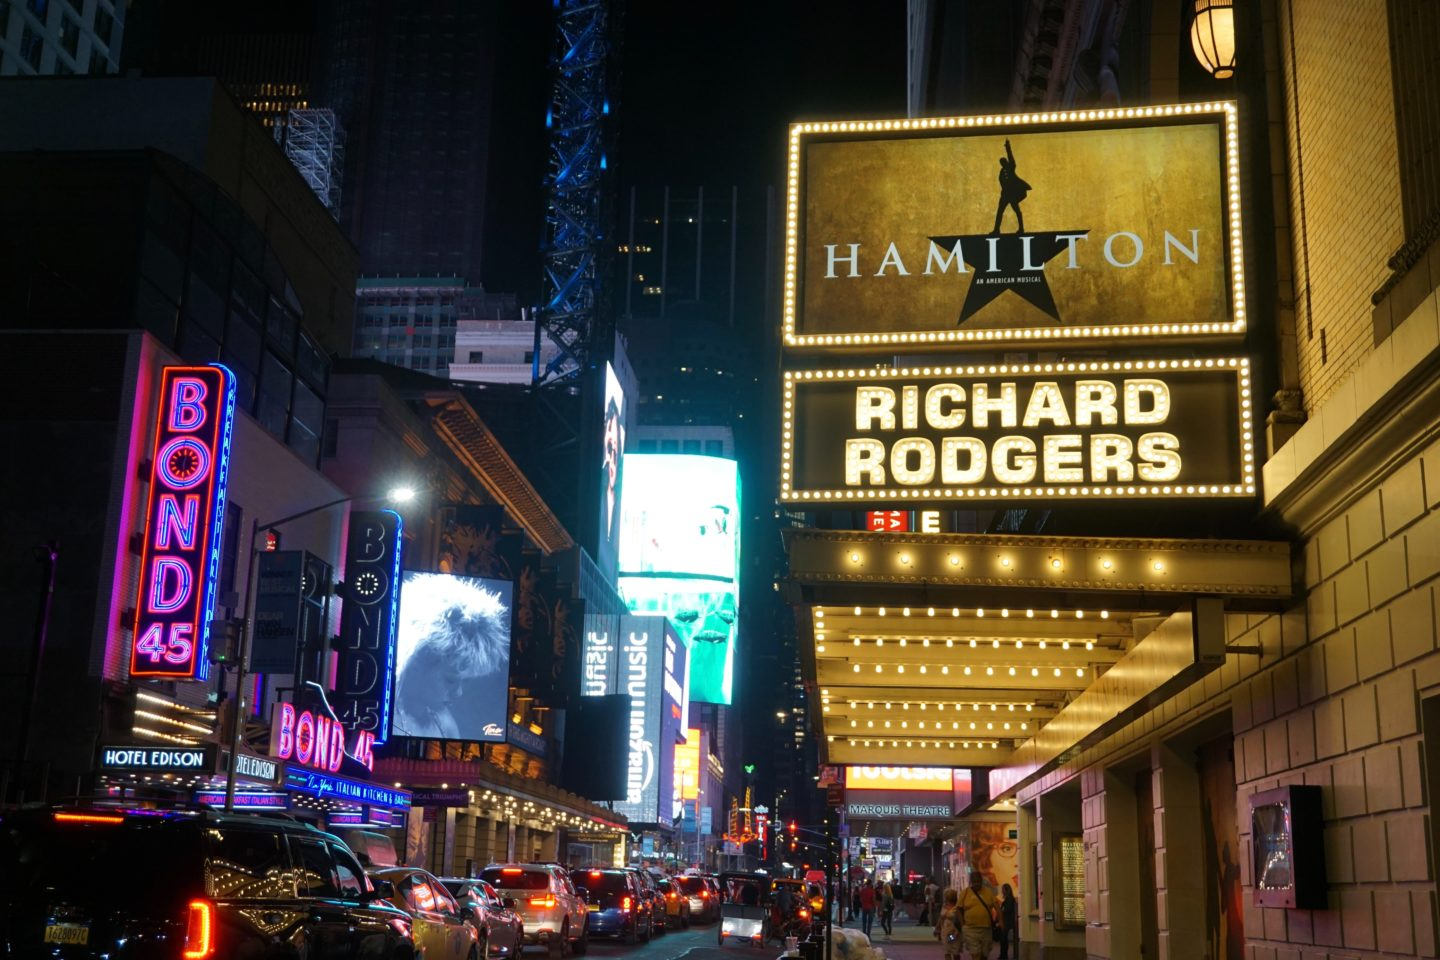 """Broadway show """"Hamilton"""" taking place at the Richard Rogers theater."""